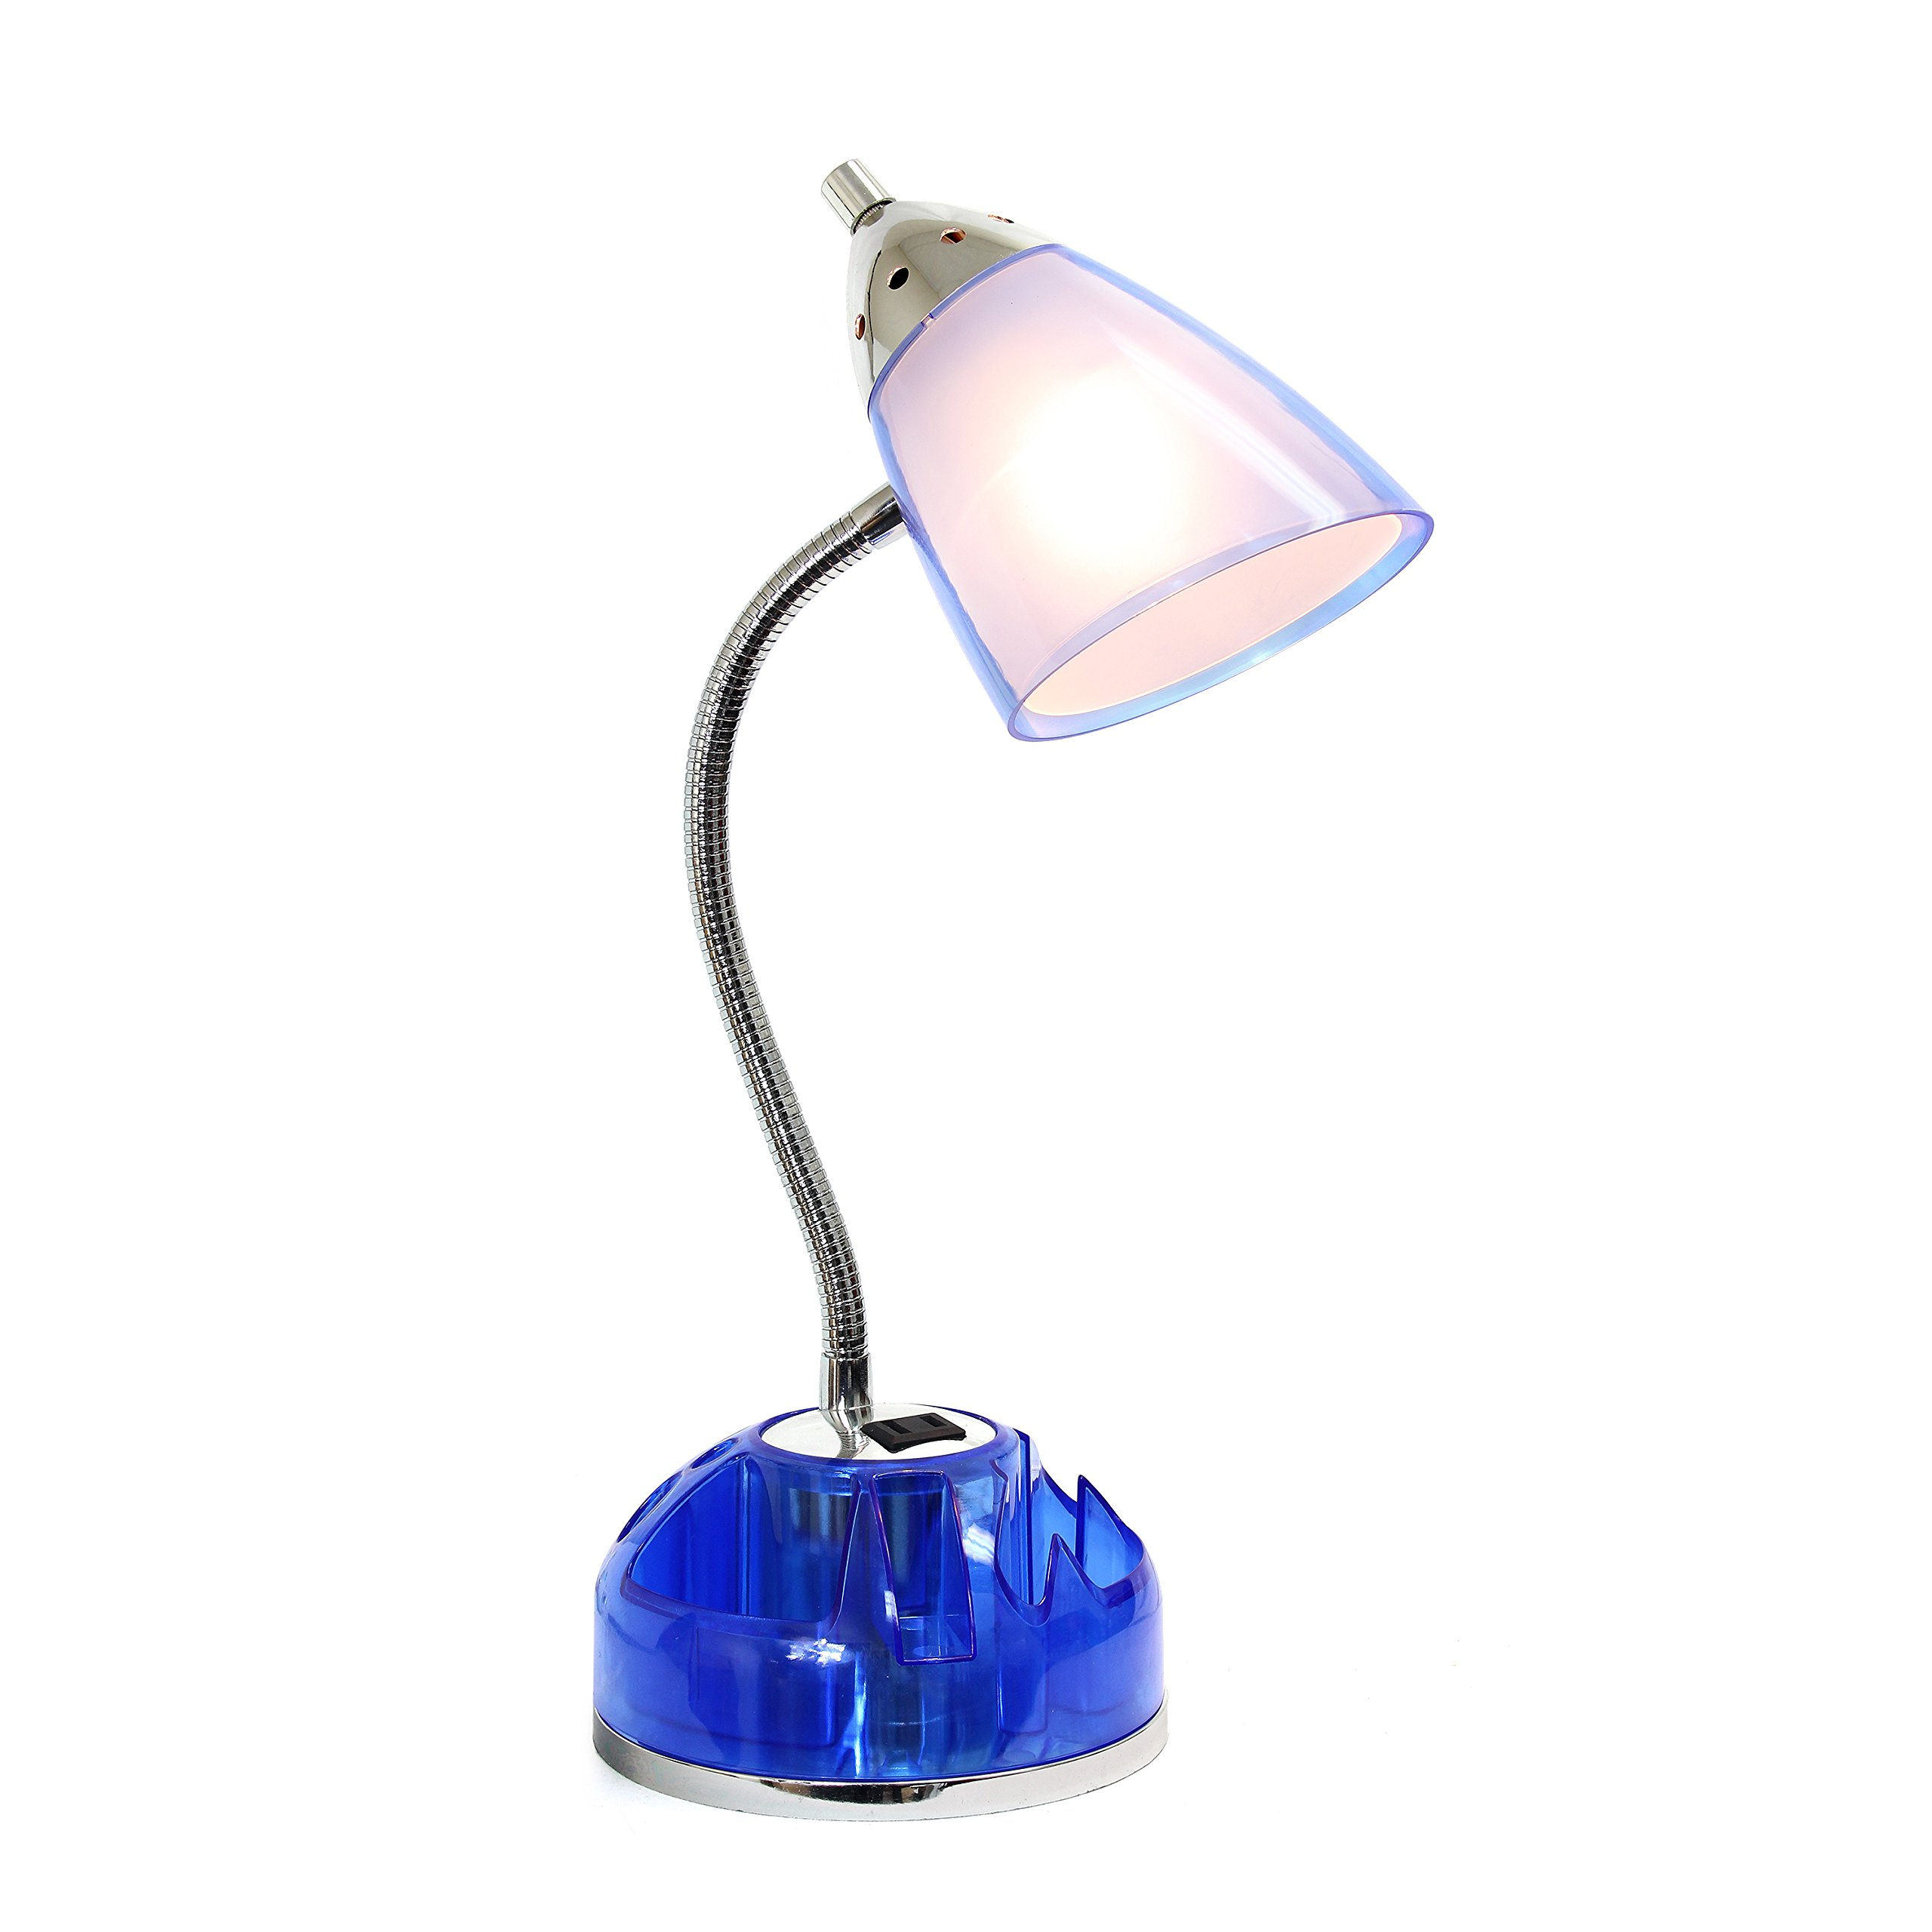 Limelights LD1015-CBL Organizer Desk Lamp with Charging Outlet Lazy Susan Base, Clear Blue by Limelights (Image #2)